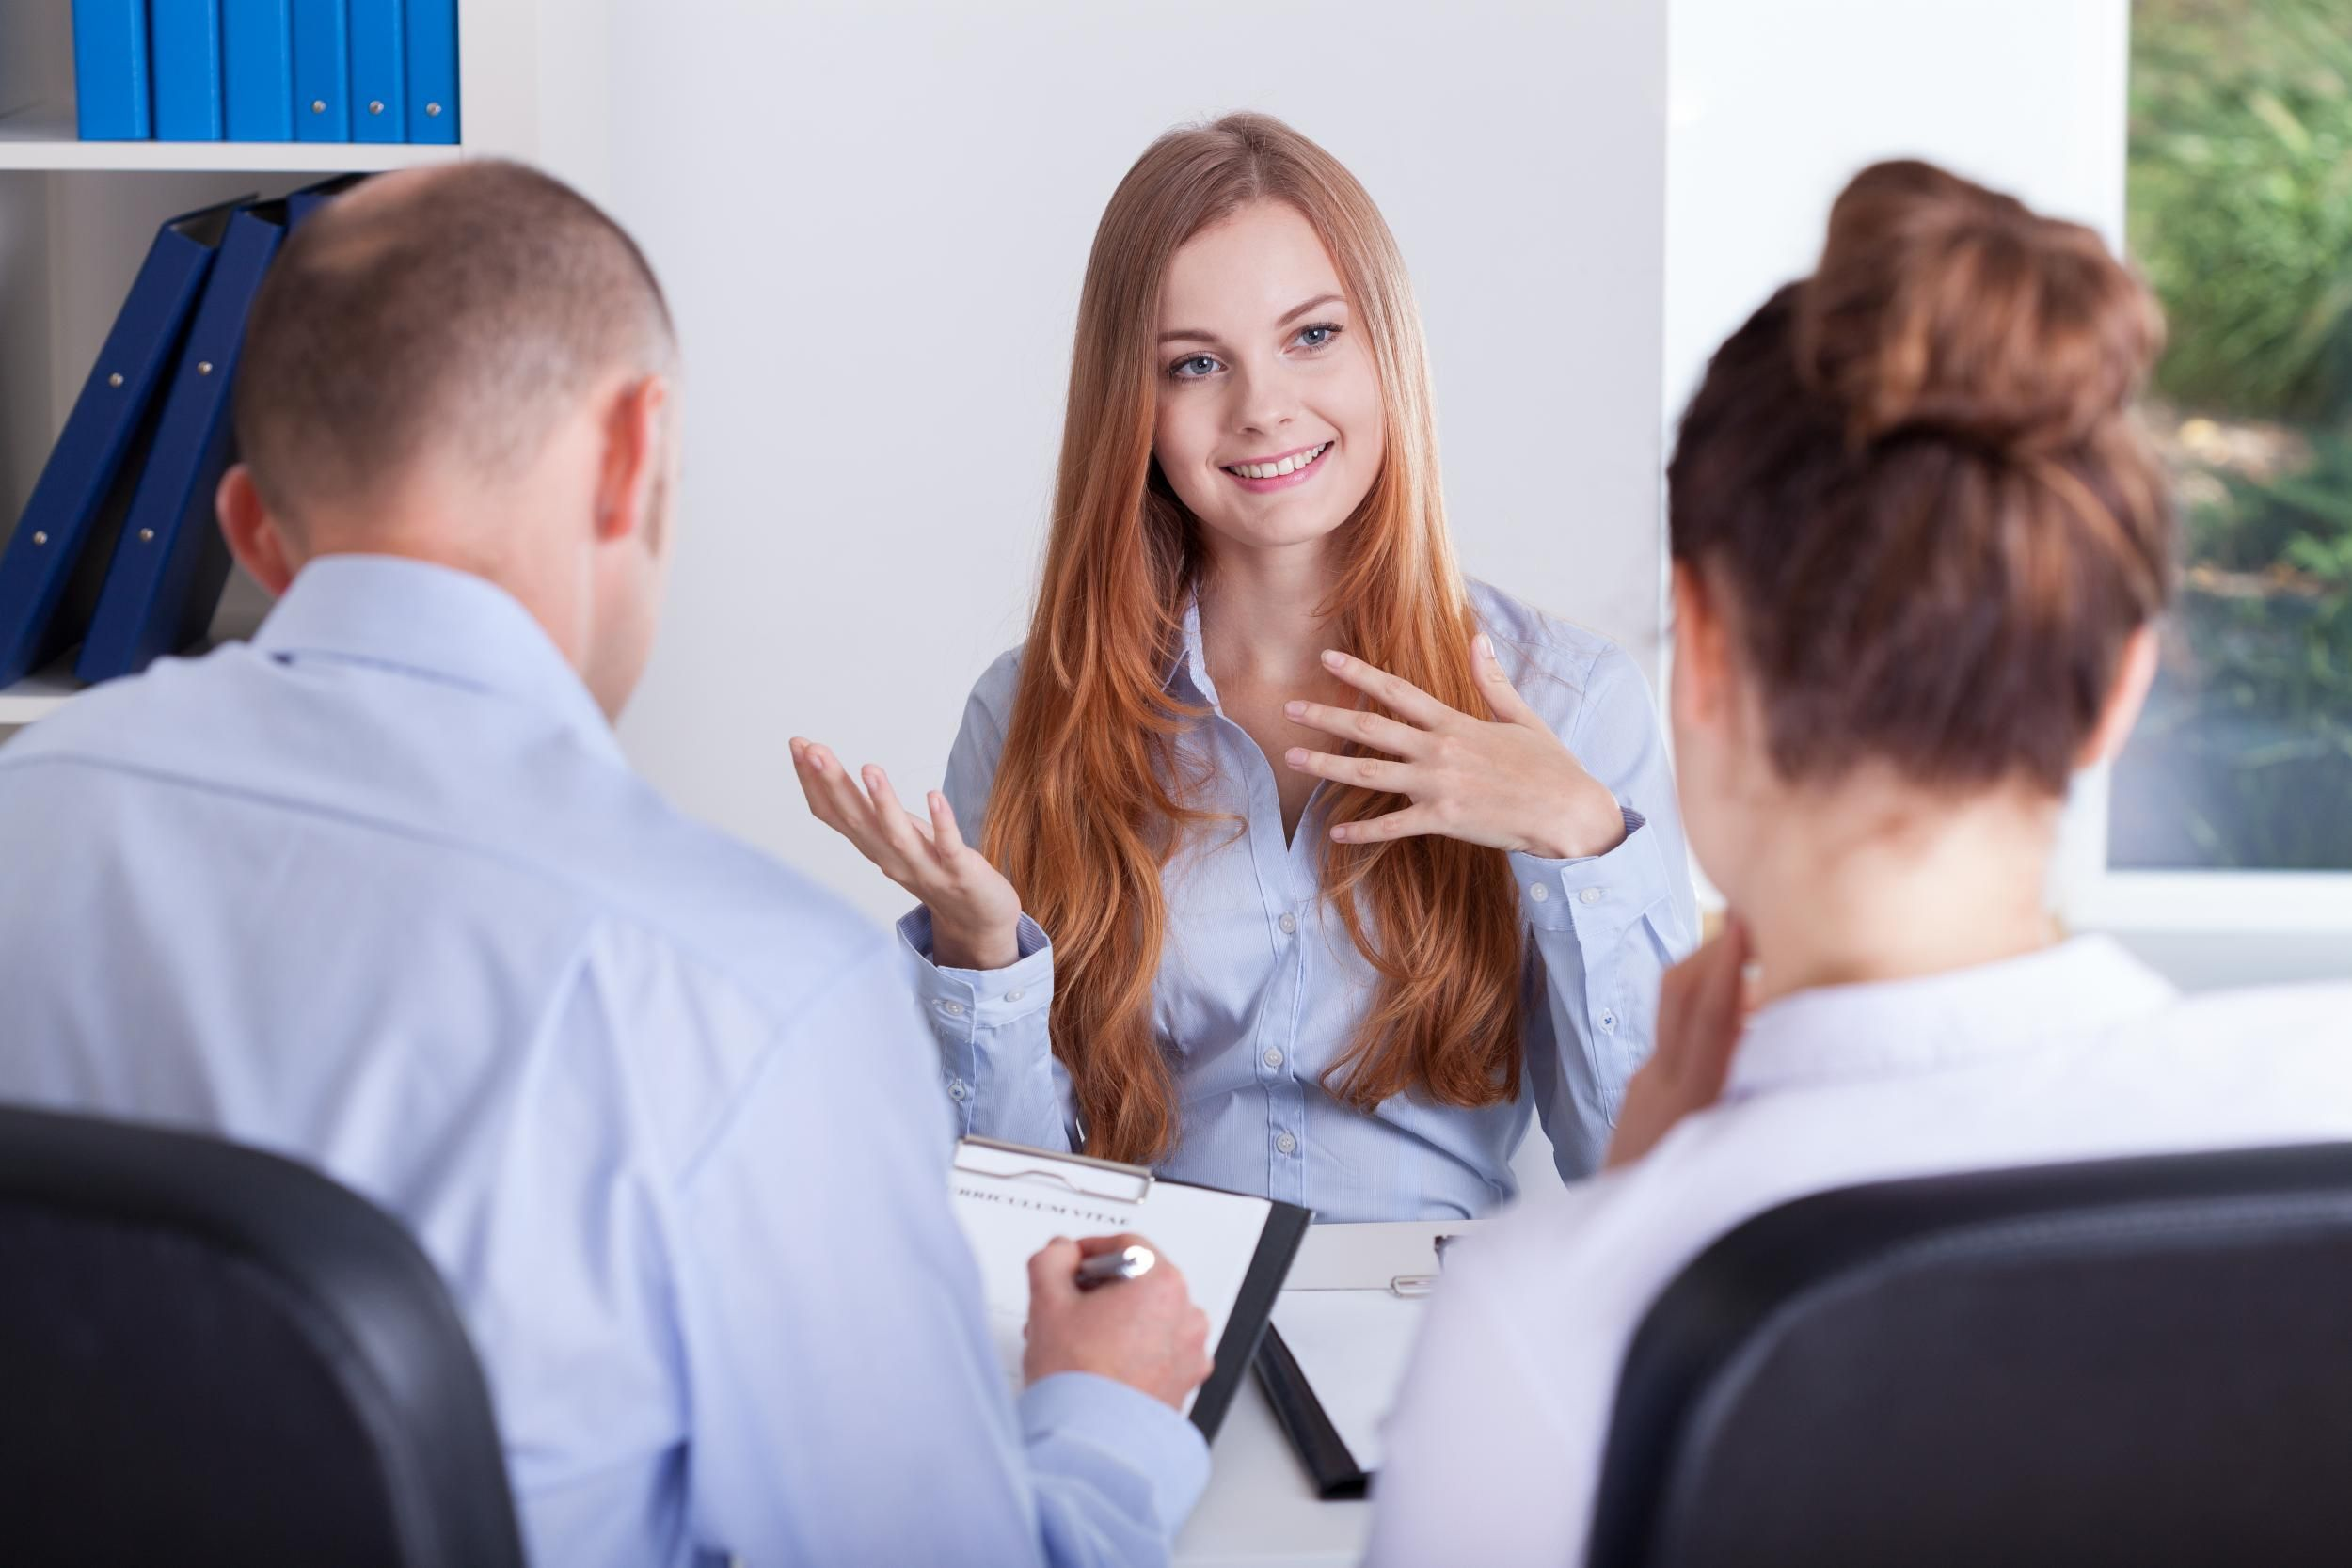 5 tips for a successful job interview